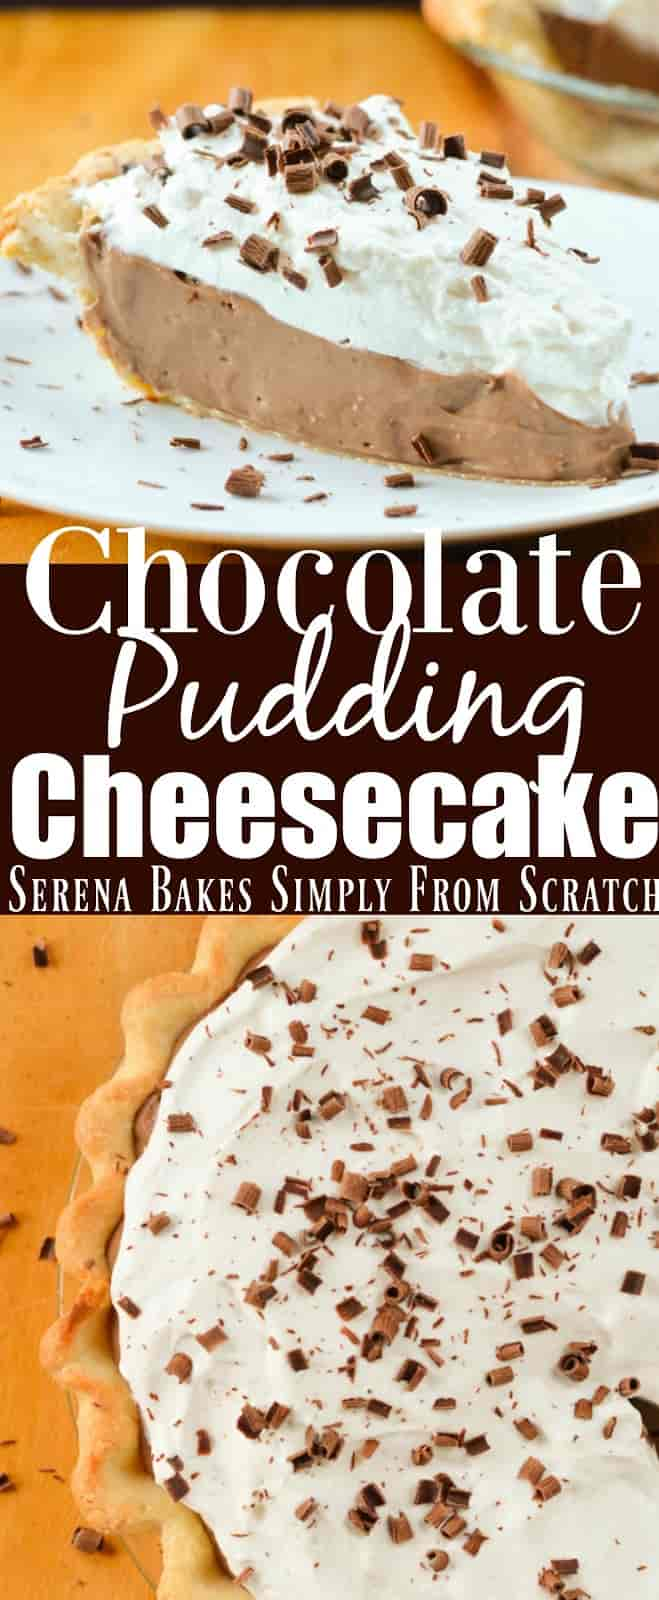 Chocolate Pudding Cheesecake recipe is the ultimate chocolate lovers dessert from Serena Bakes Simply From Scratch.